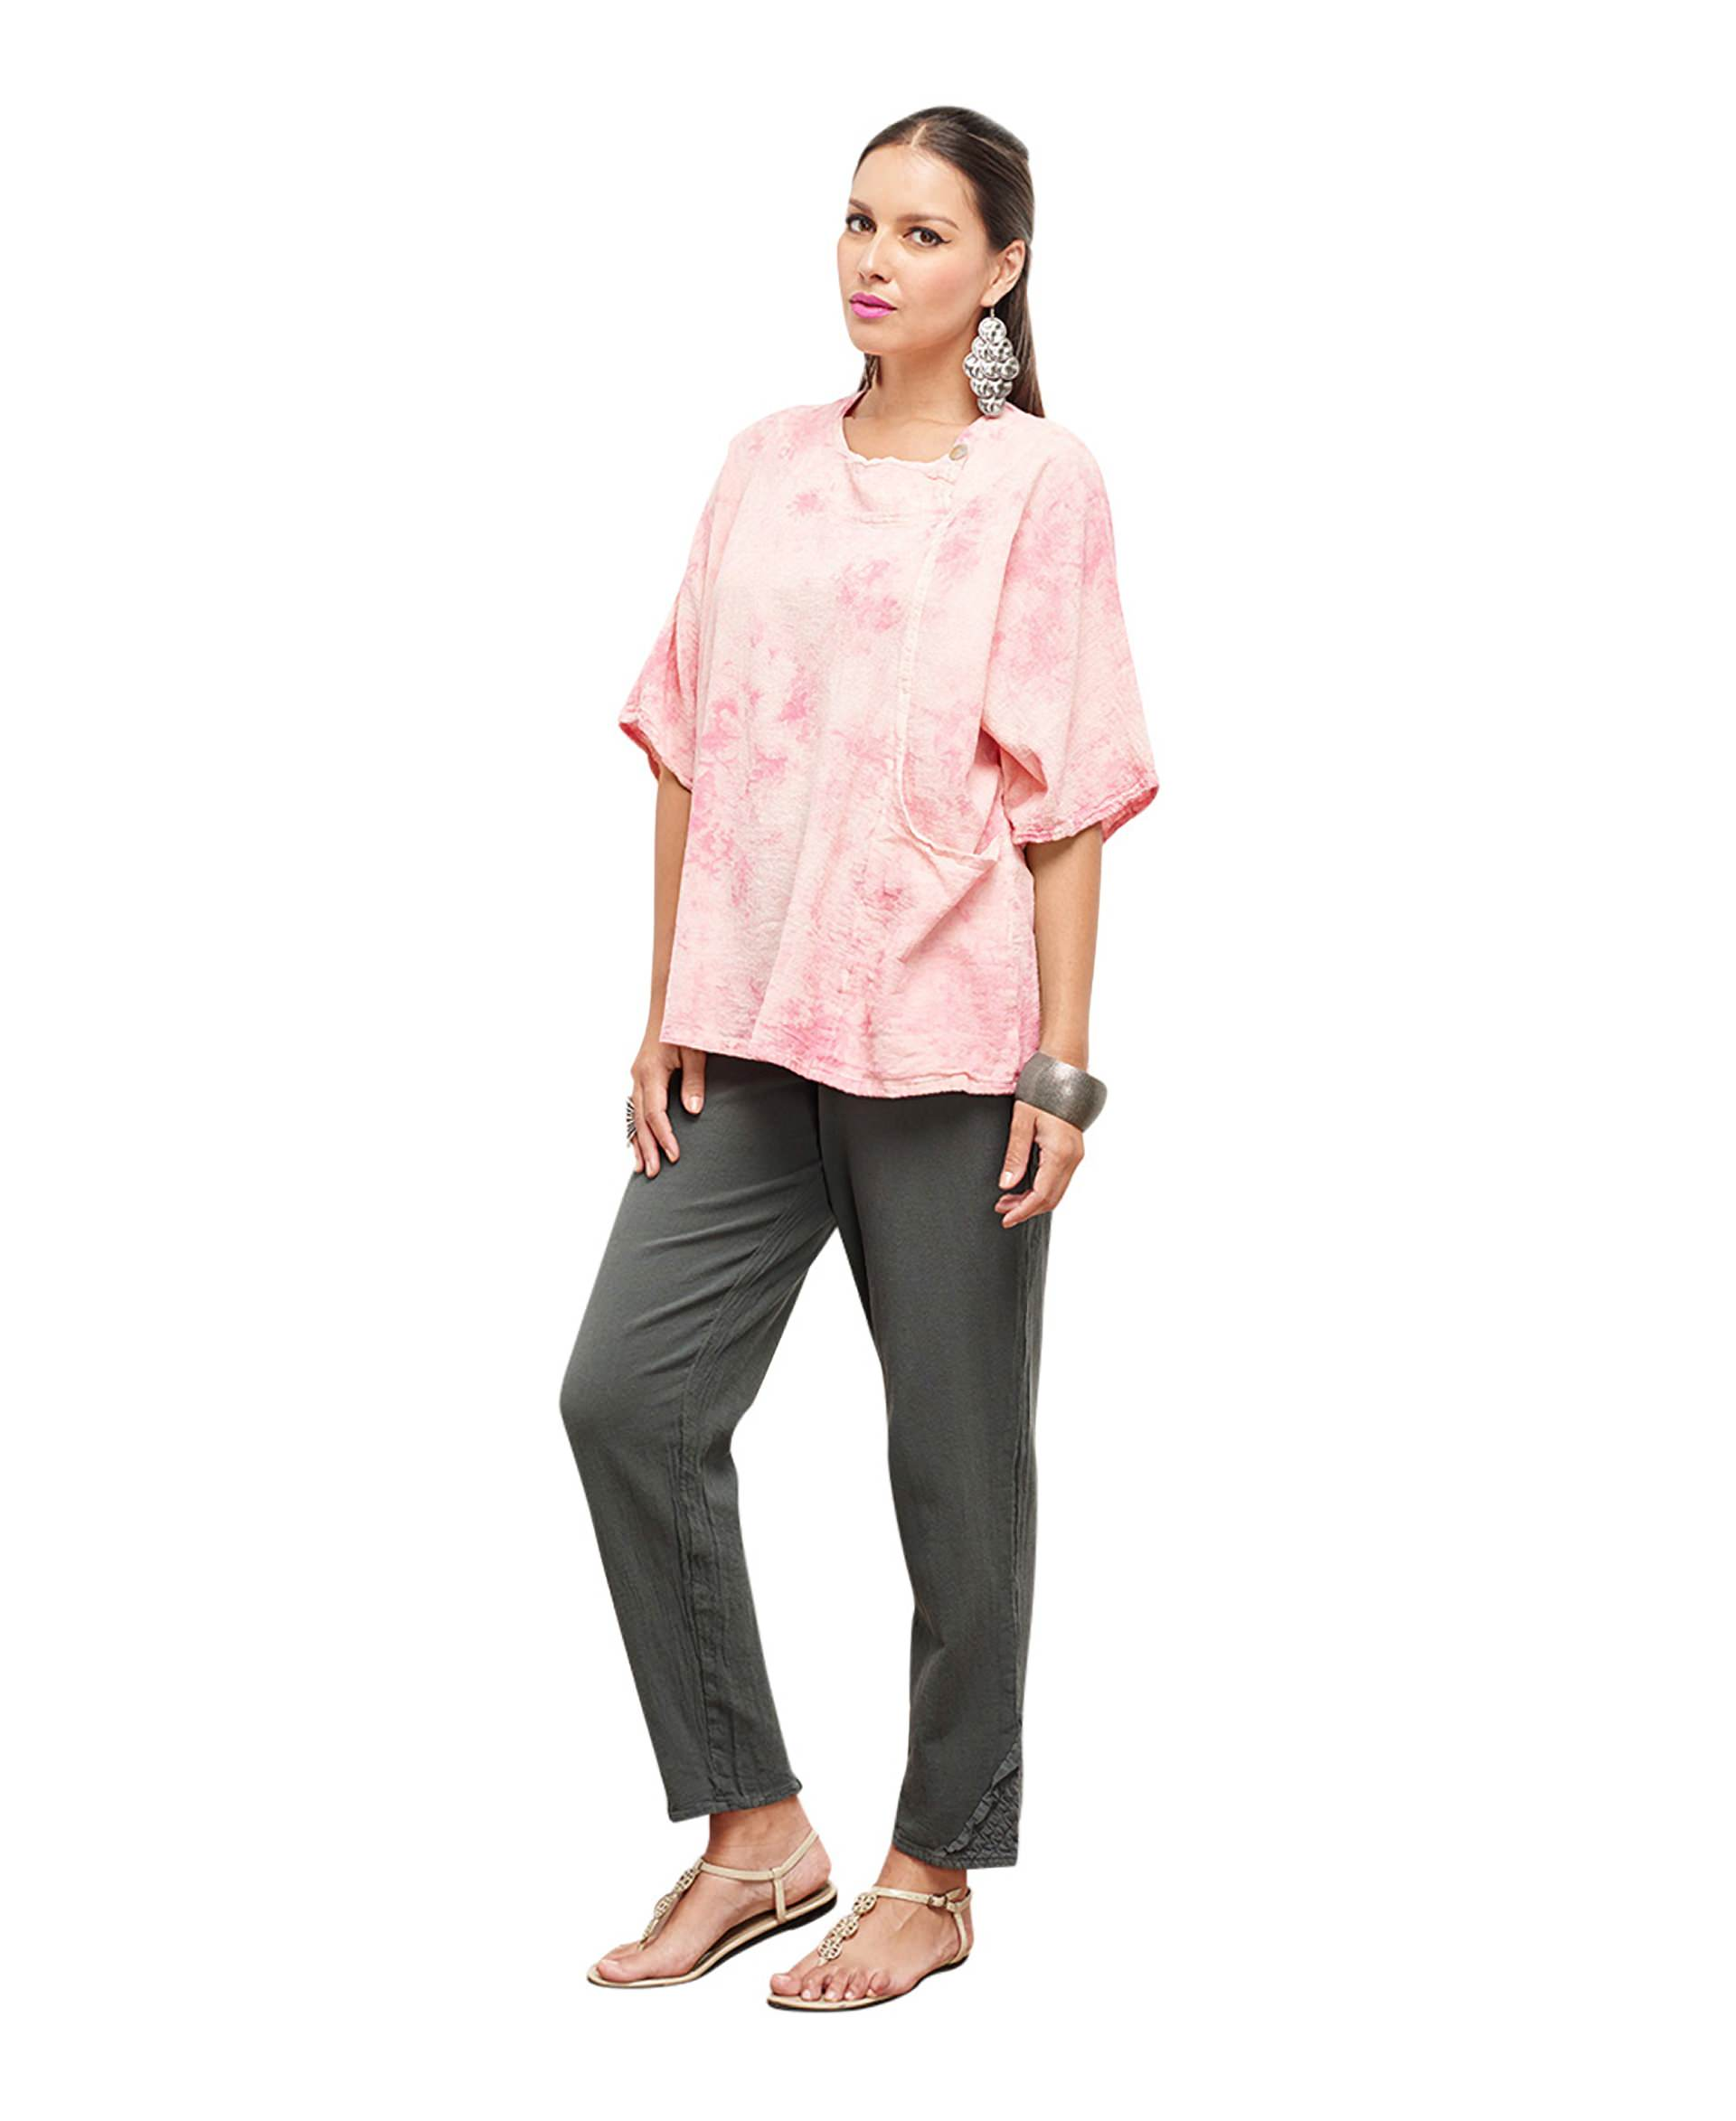 Oh My: Oh My Gauze Athena Blouse Tunic Top 100% Cotton Lagenlook